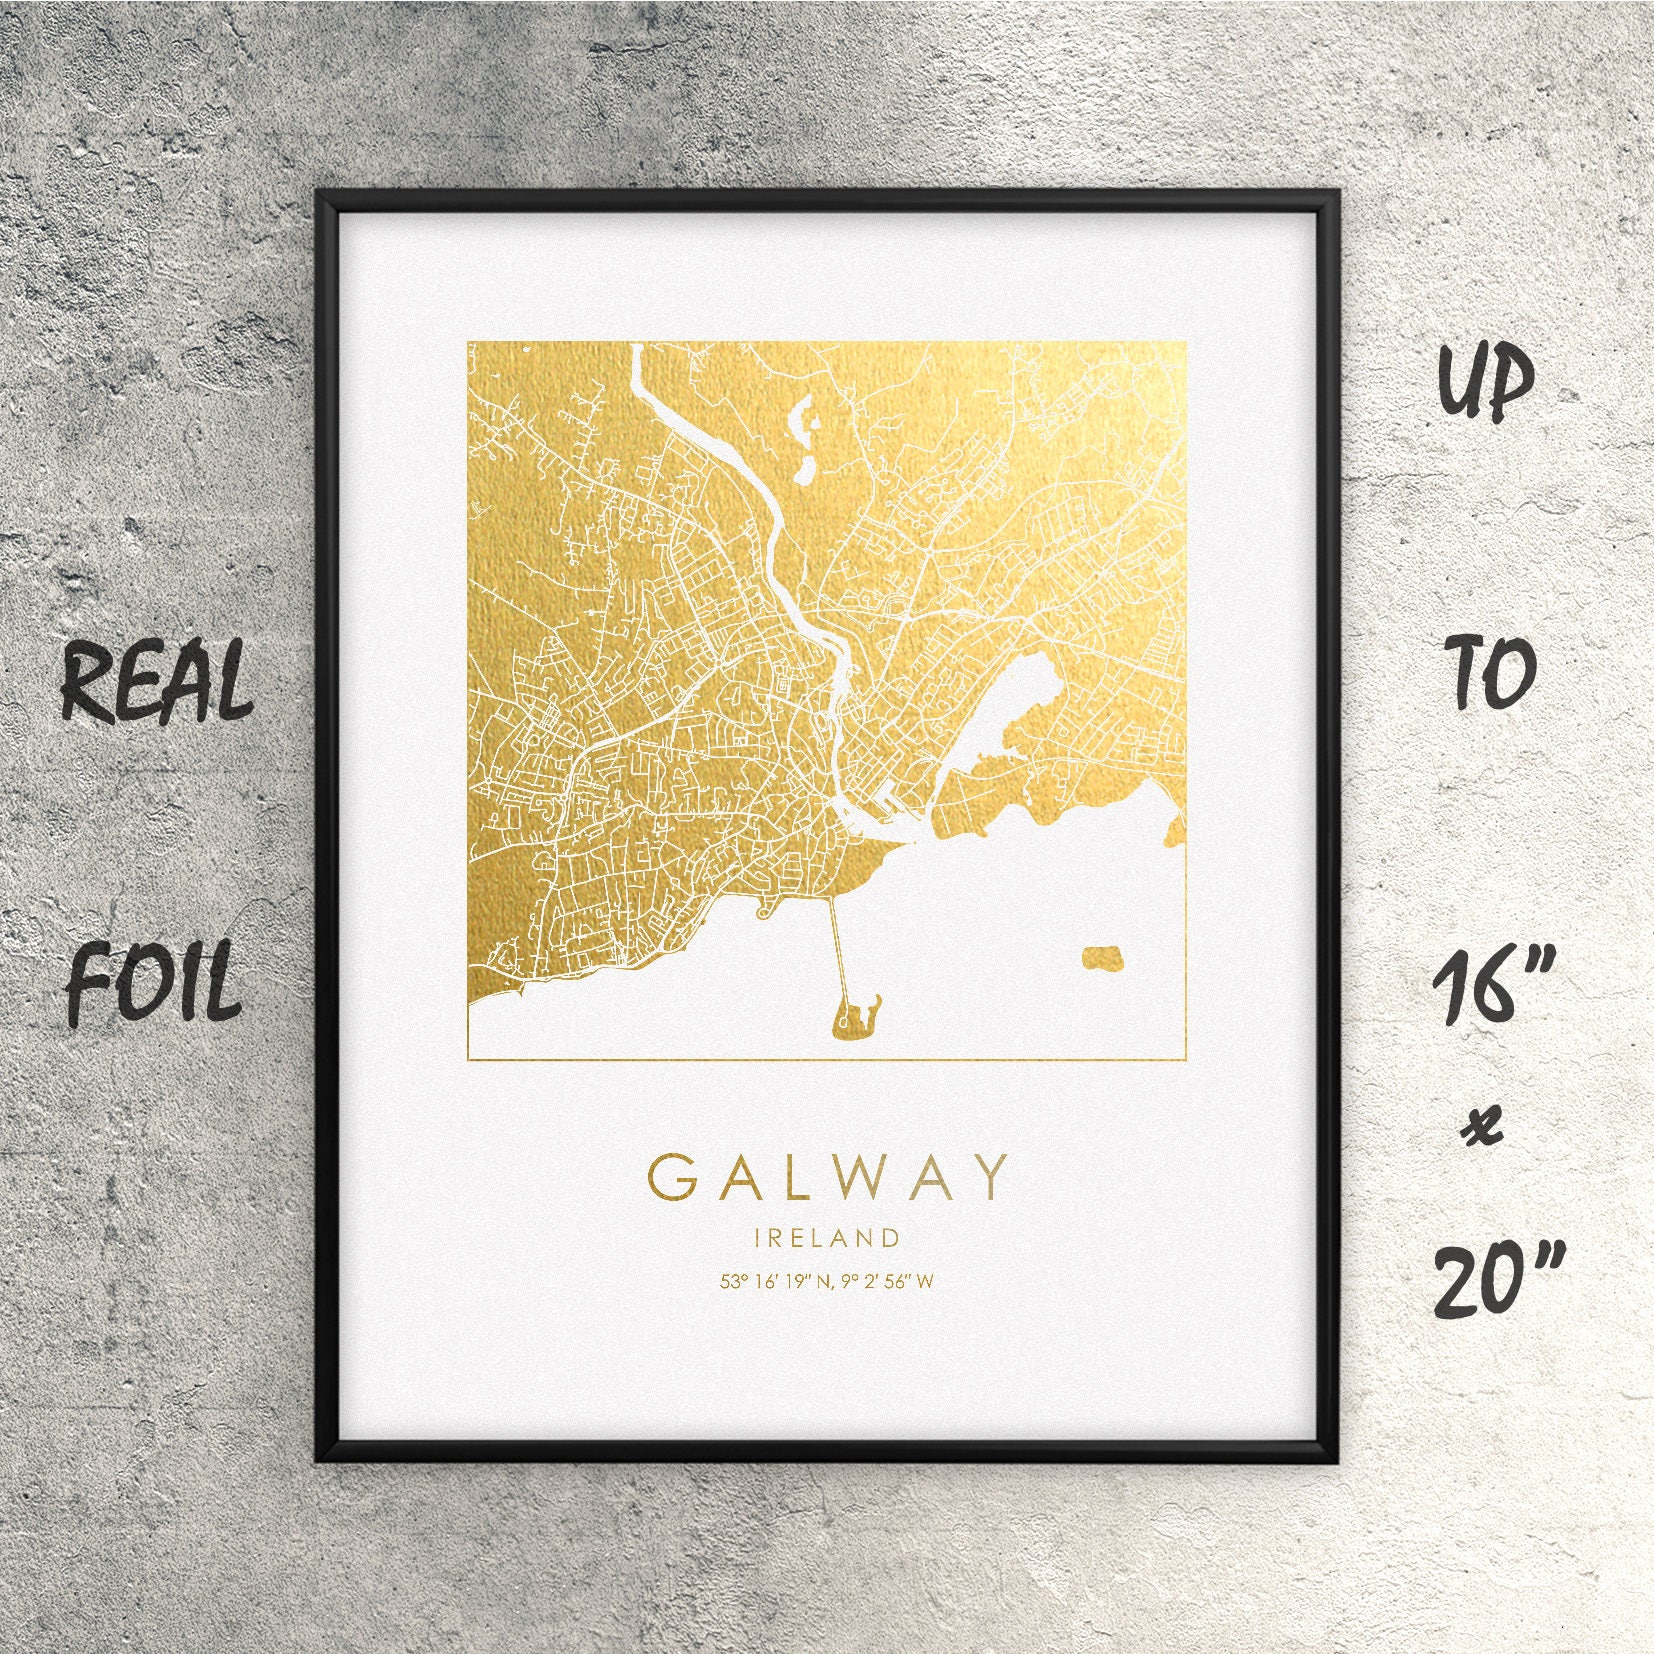 Galway City Map Gold and Silver Foil Print Gaillimh Large